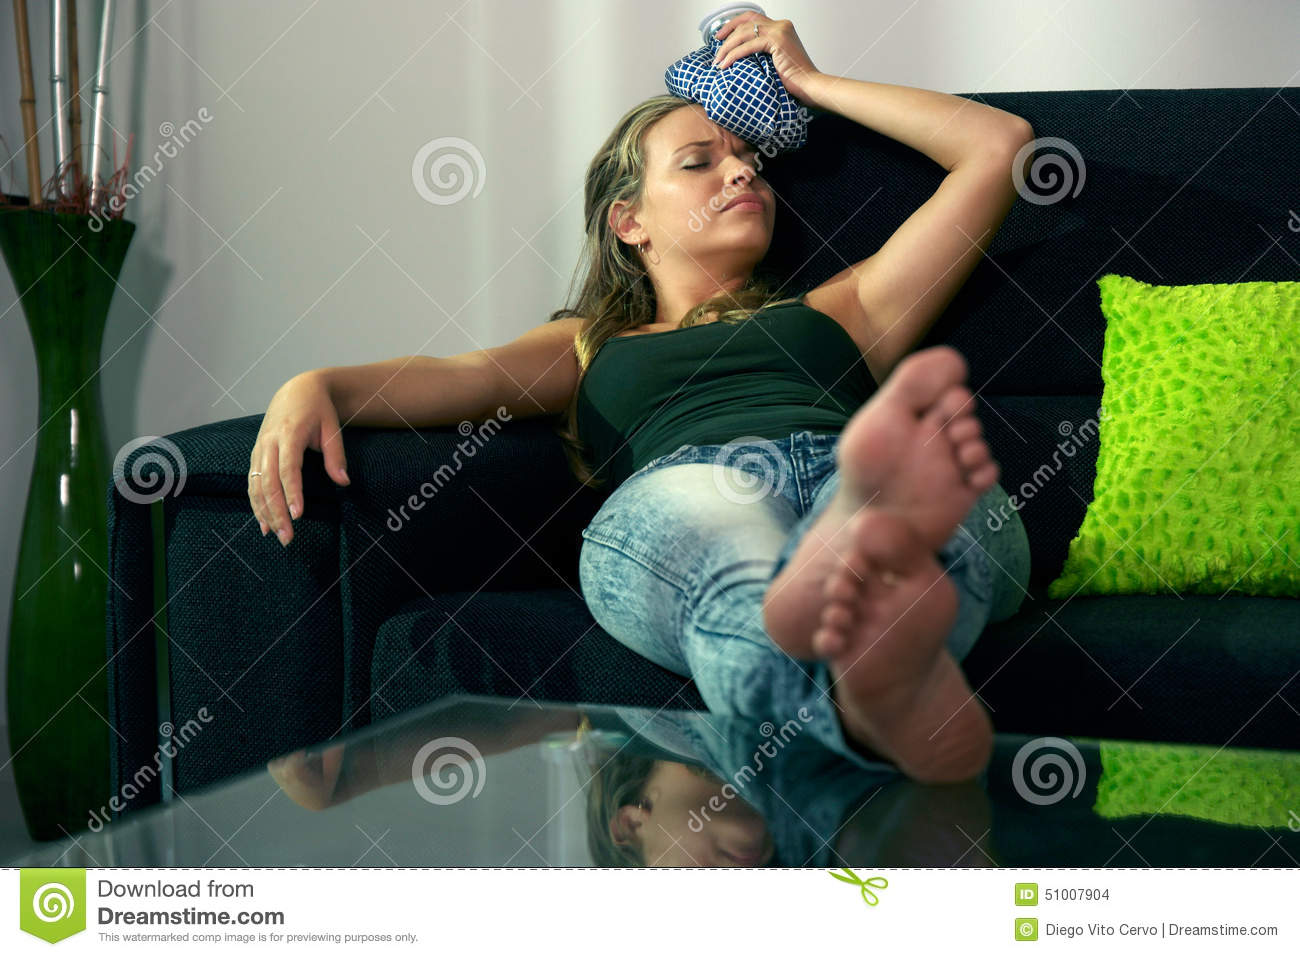 Woman With Headache Sitting On Sofa With Ice Bag On Head  : woman headache sitting sofa ice bag head young hispanic girl feeling tired laying home relaxing feet table 51007904 from www.dreamstime.com size 1300 x 957 jpeg 146kB